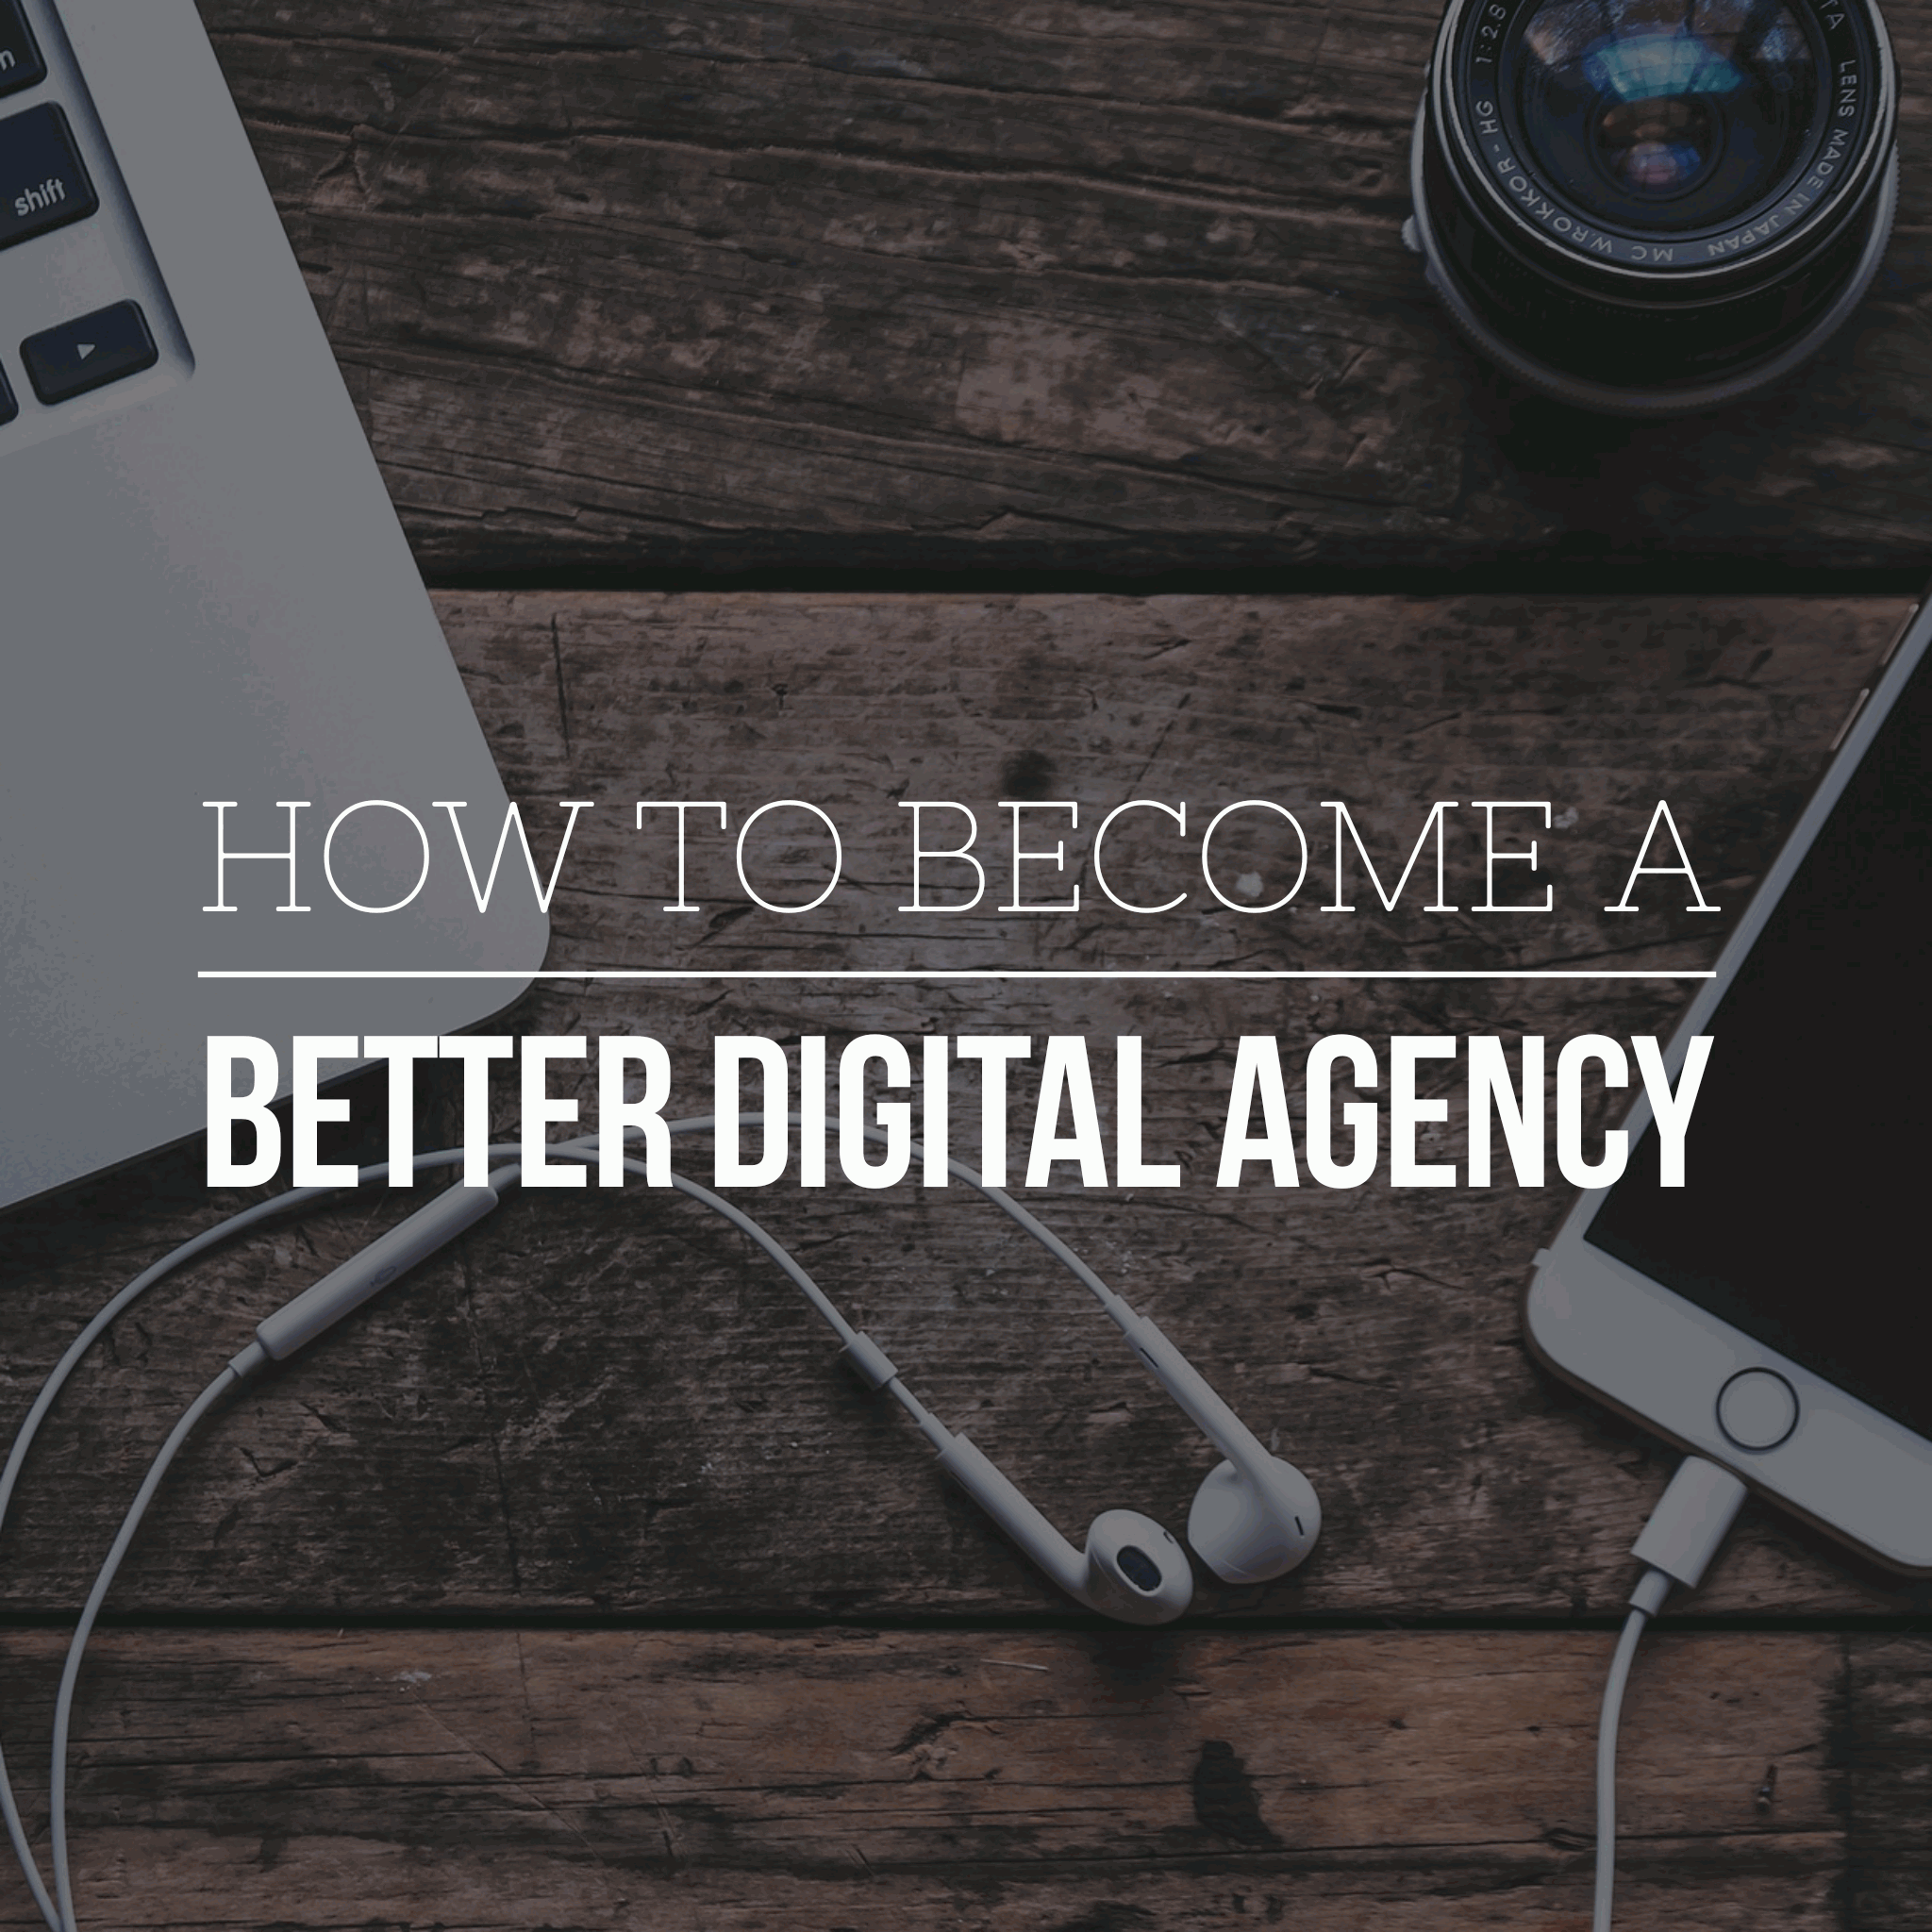 How Digital Agencies Can Become Better by Being More Transparent